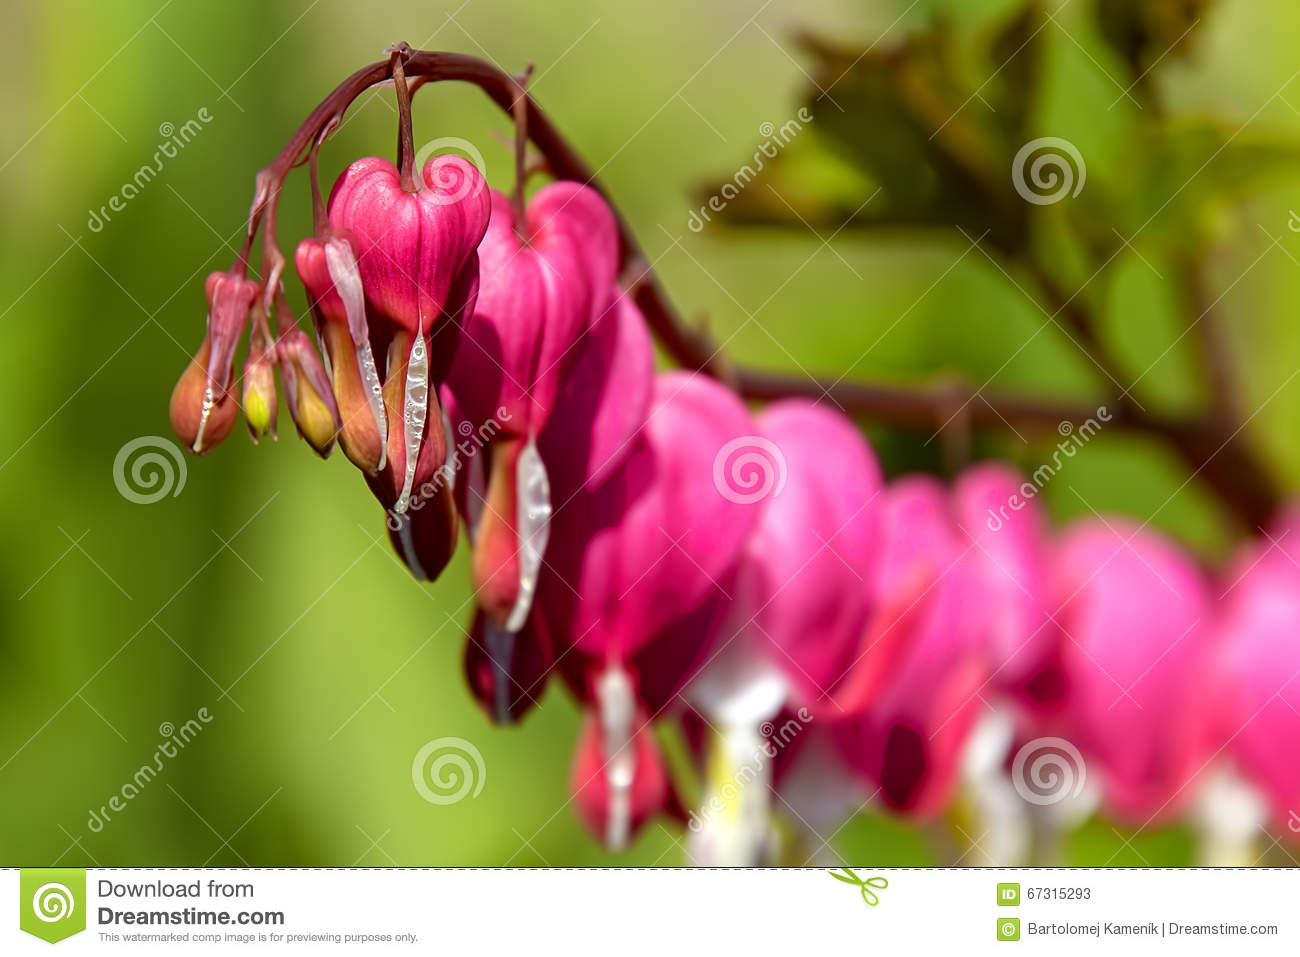 Bleeding Heart Flowers With Dew Drops Stock Image